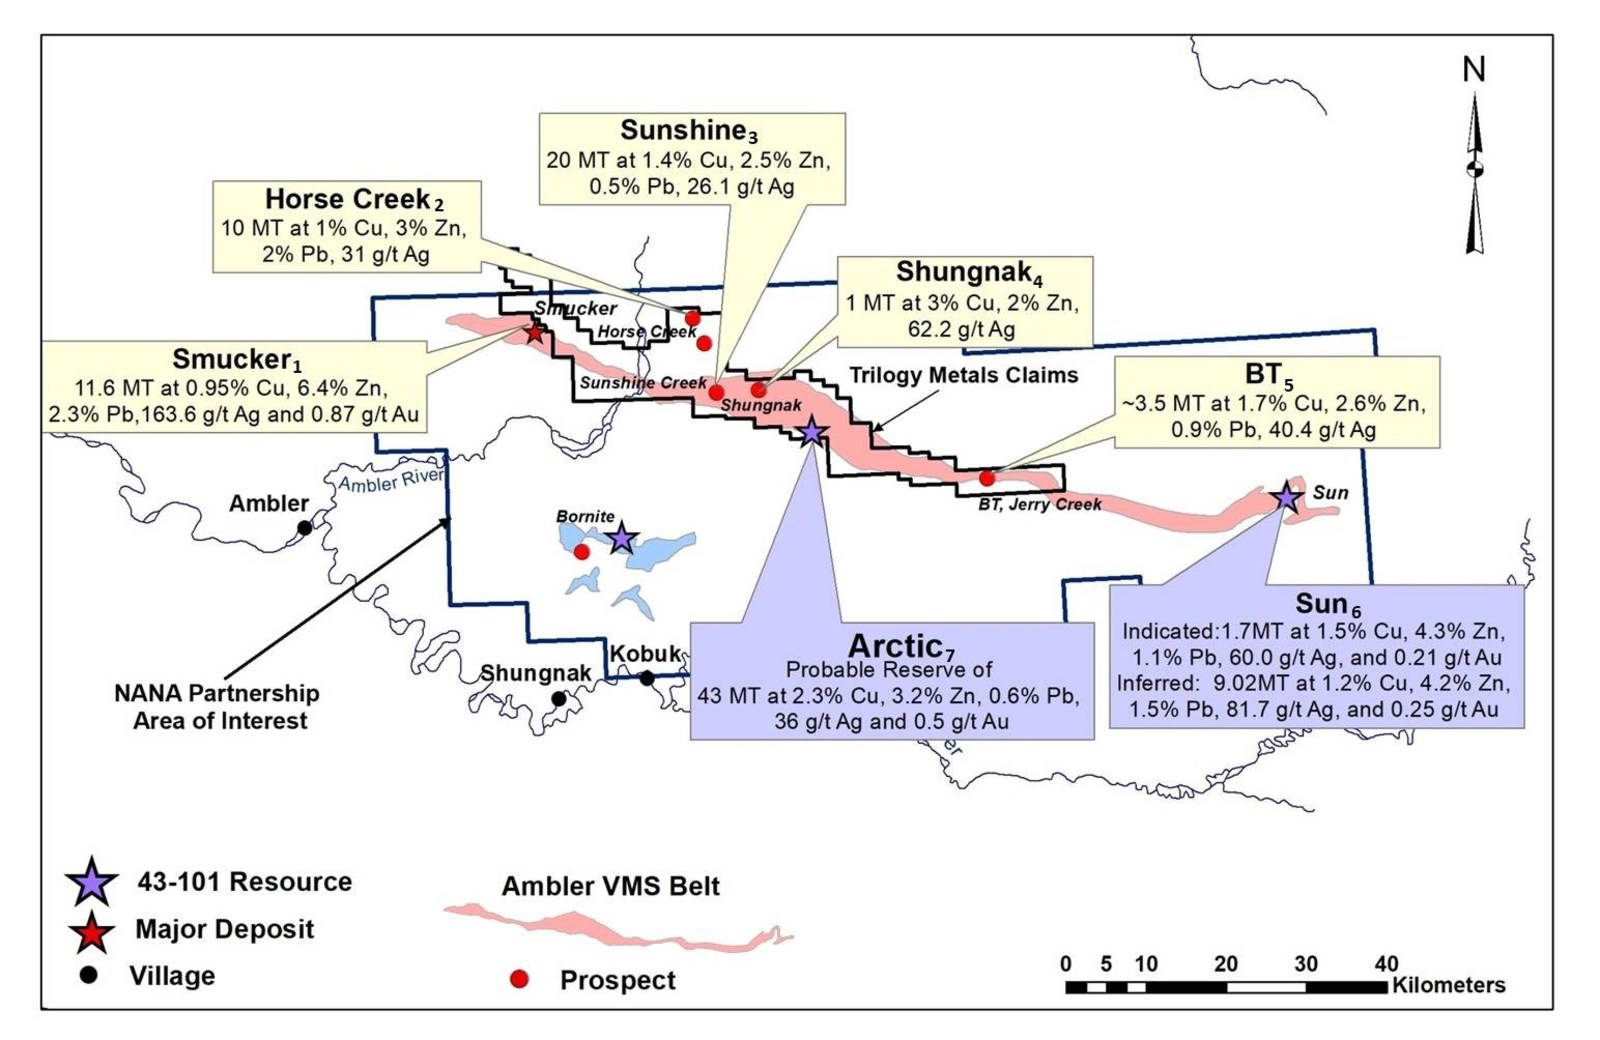 Figure 1. Location of Historic Resources at the Ambler VMS Belt